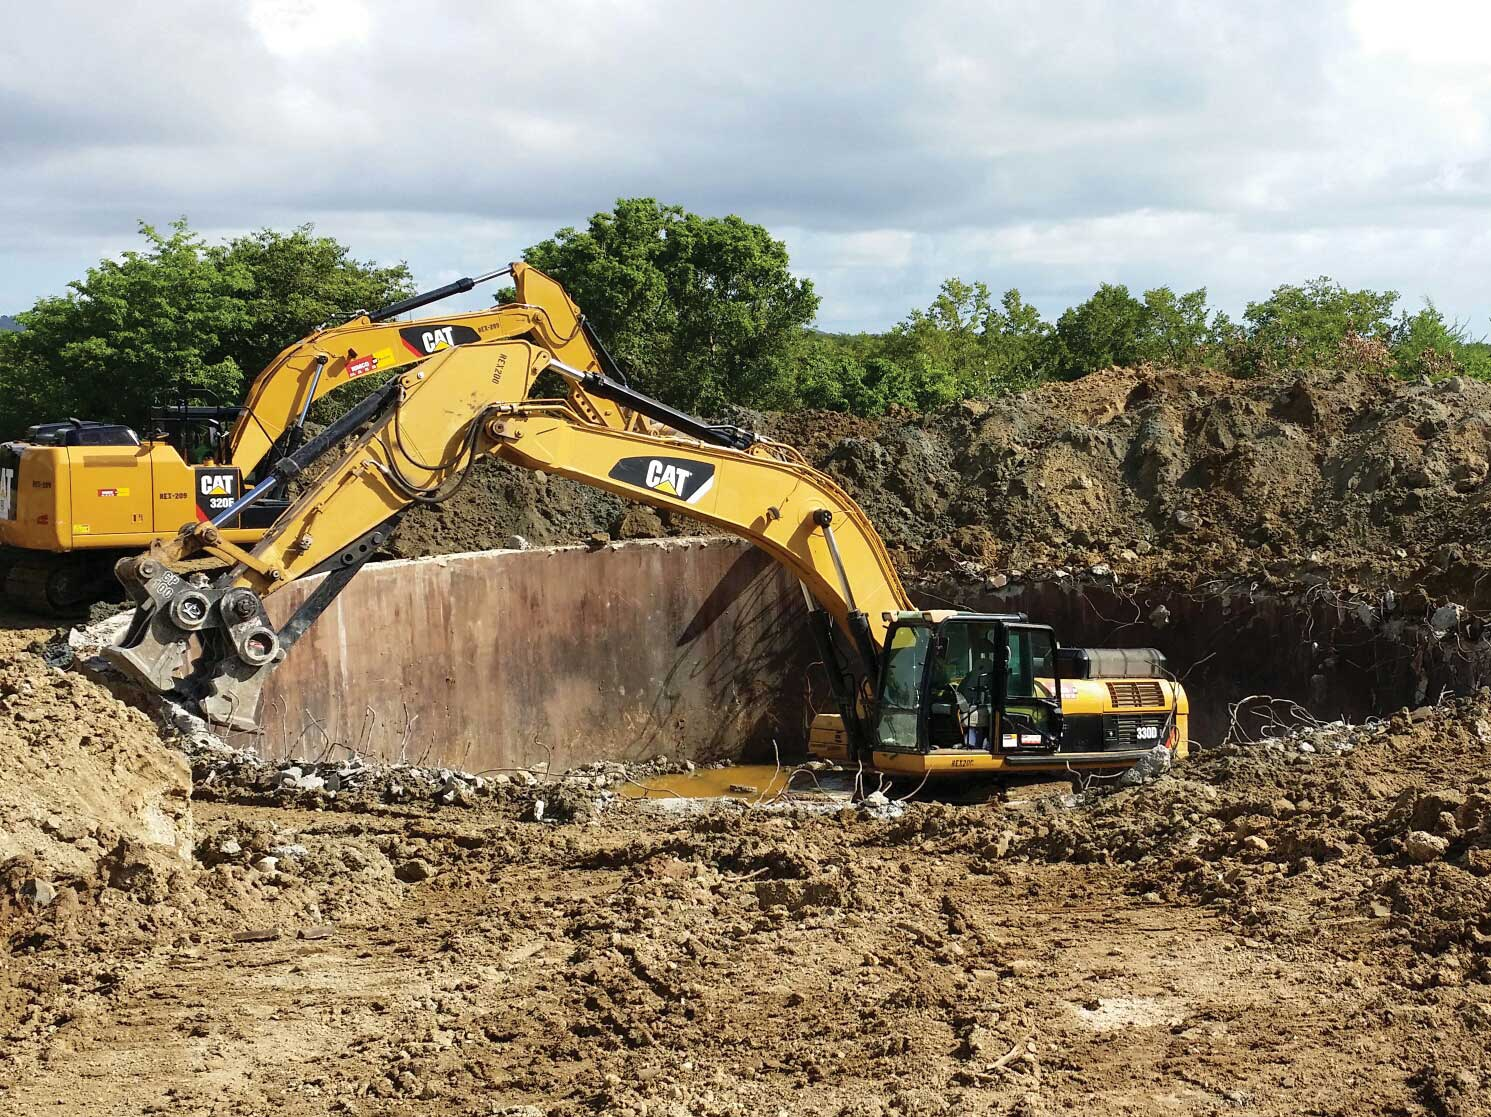 Excavator digging a big hole